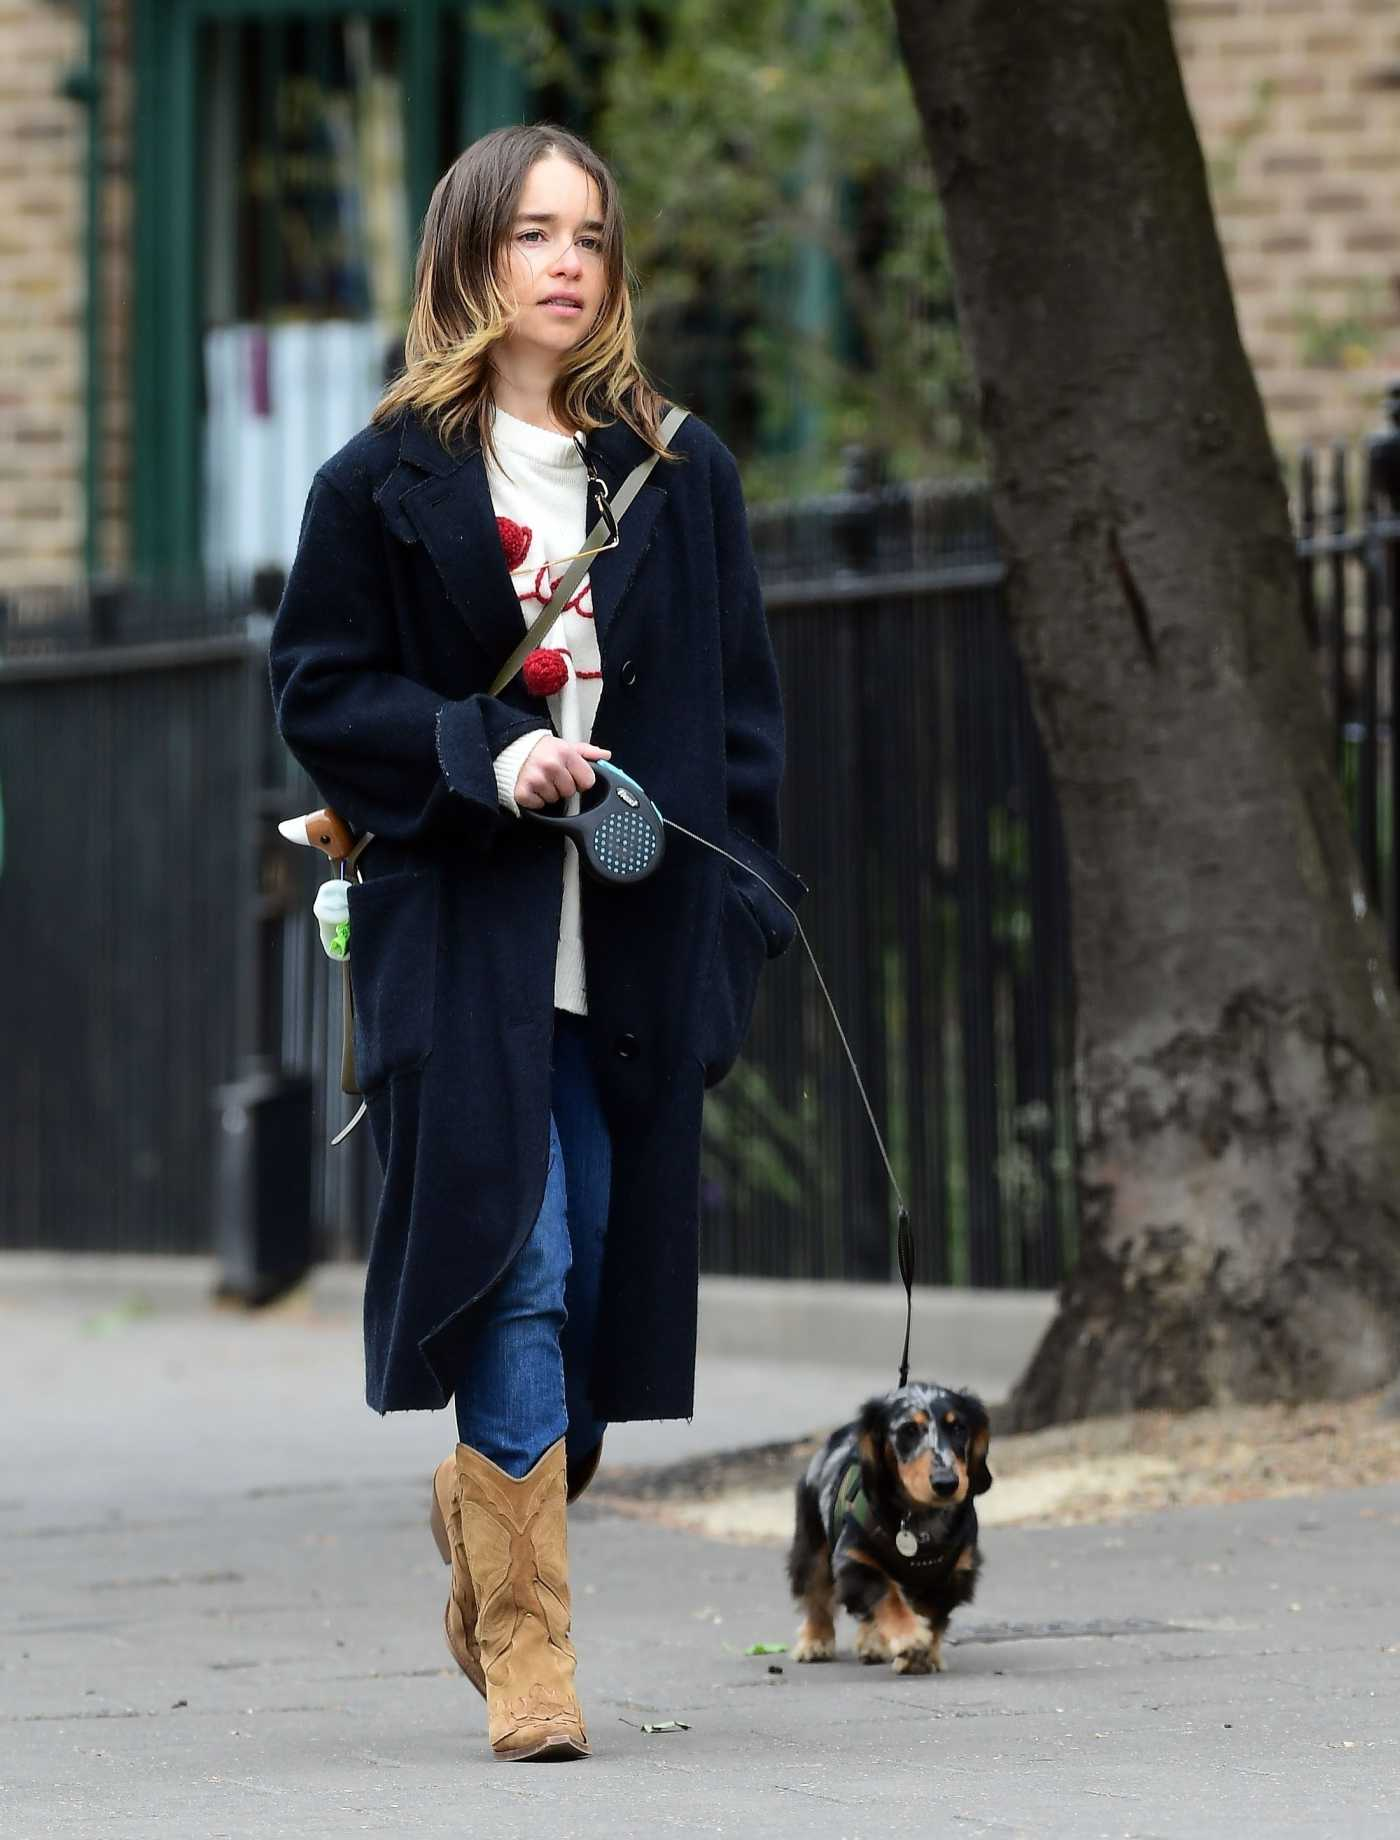 Emilia Clarke in a Black Coat Walks Her Dachshund Dog at the Park in London 06/06/2020